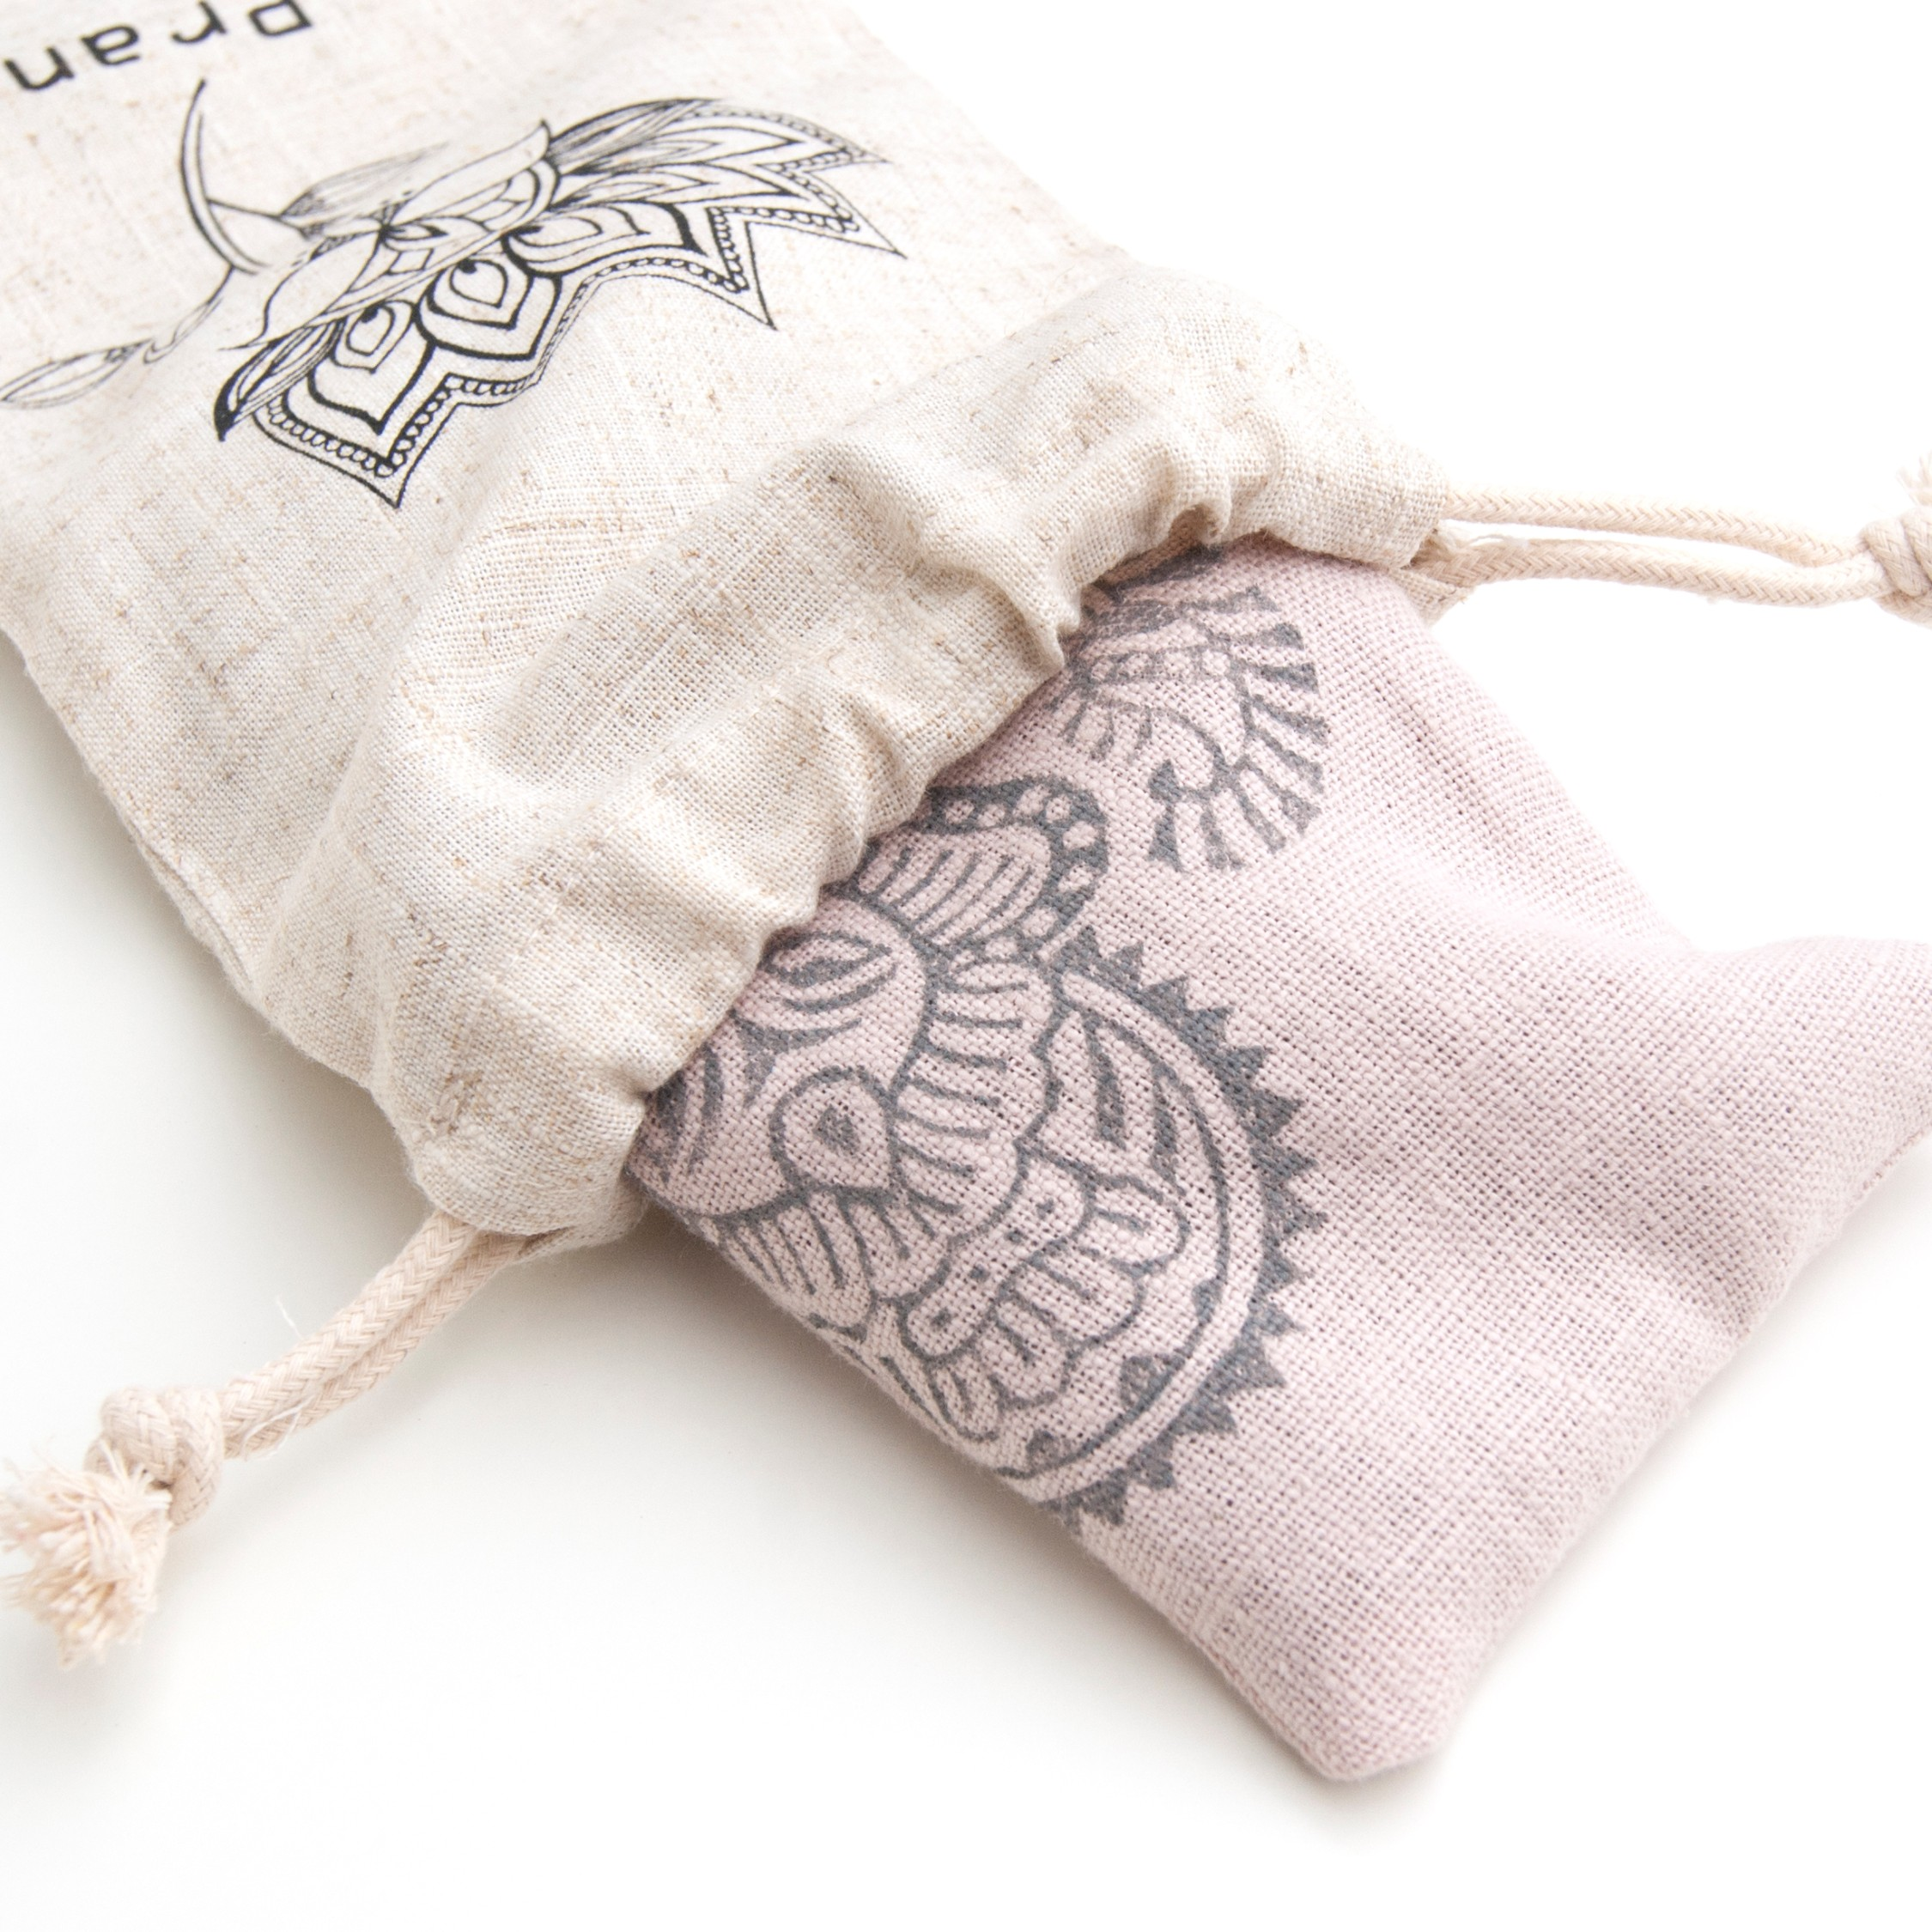 Yoga eye pillow Ganesh